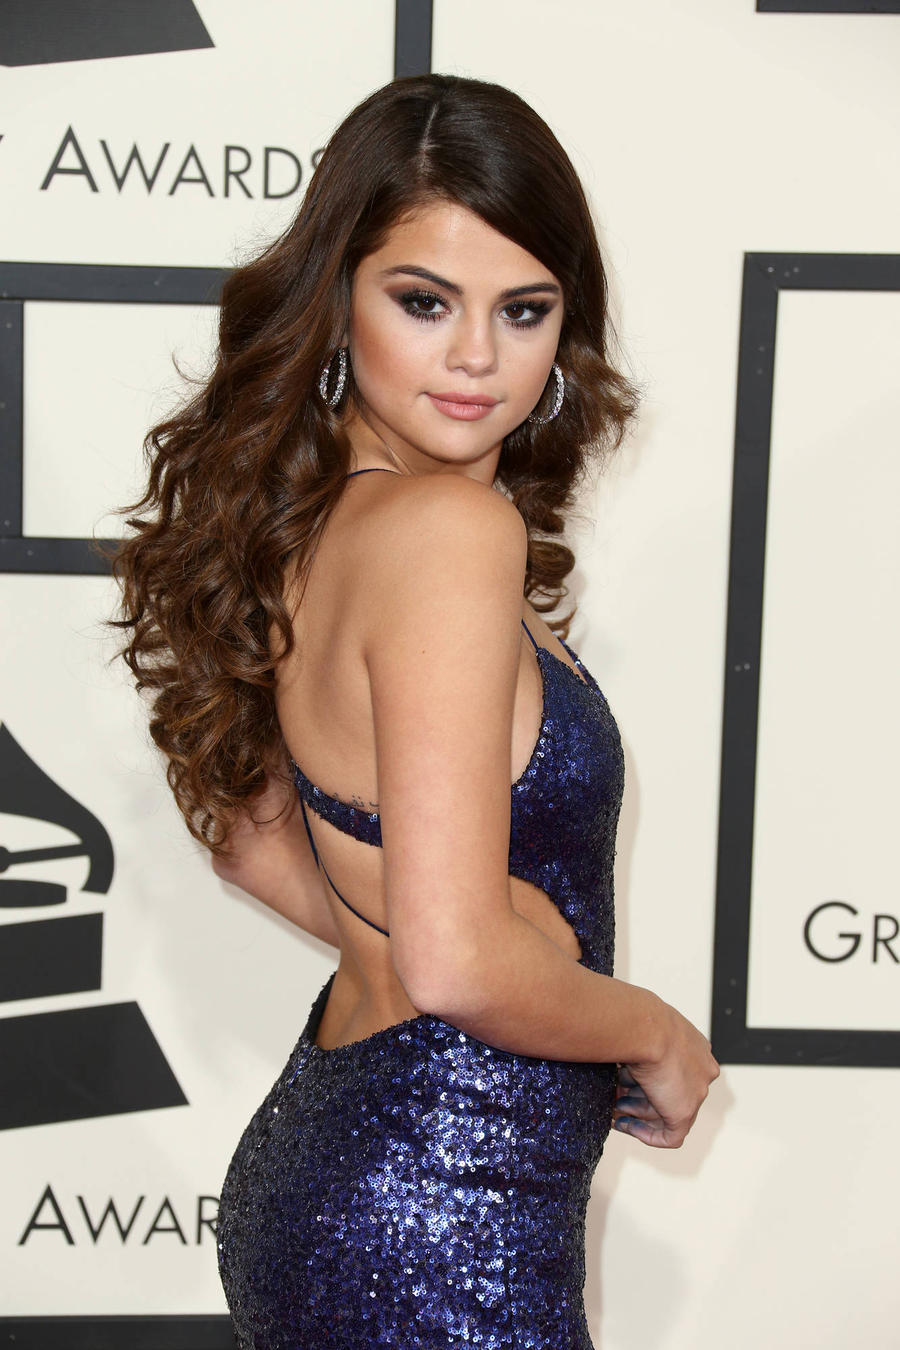 Selena Gomez Strips Down To A Thong On Social Media